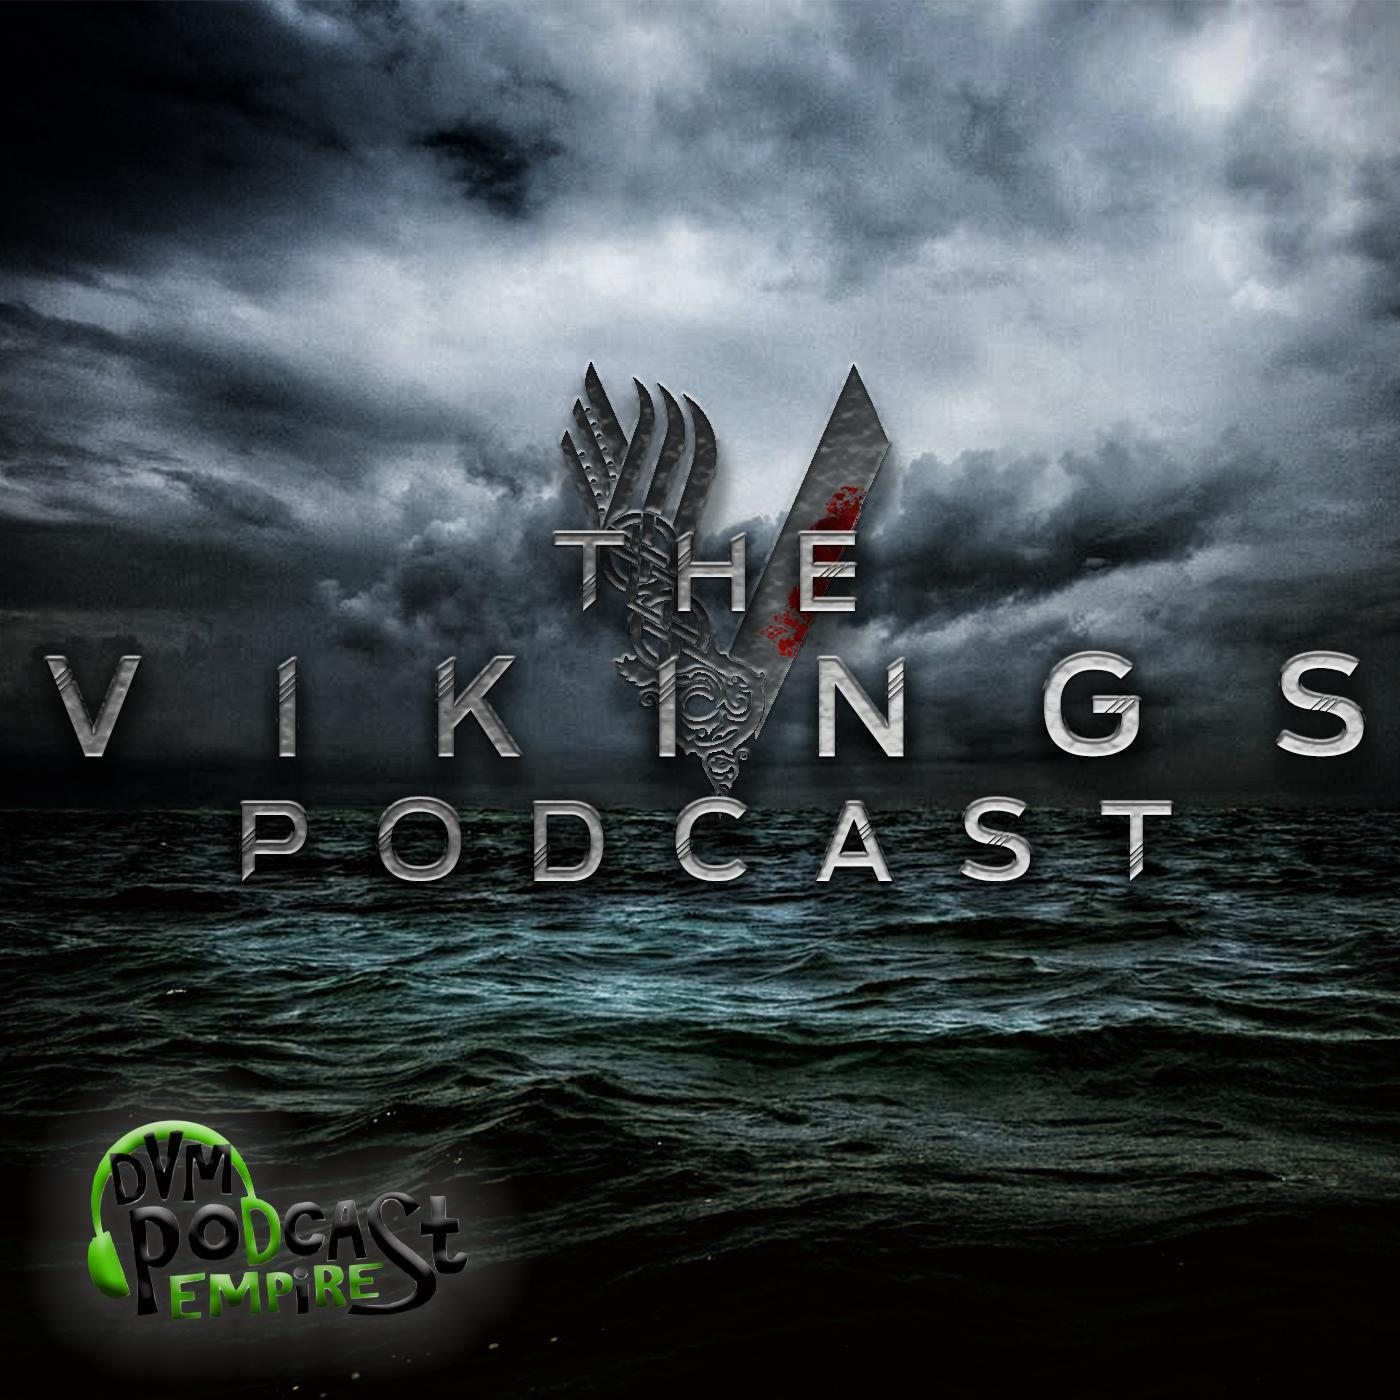 vikingspodcast on Twitter: